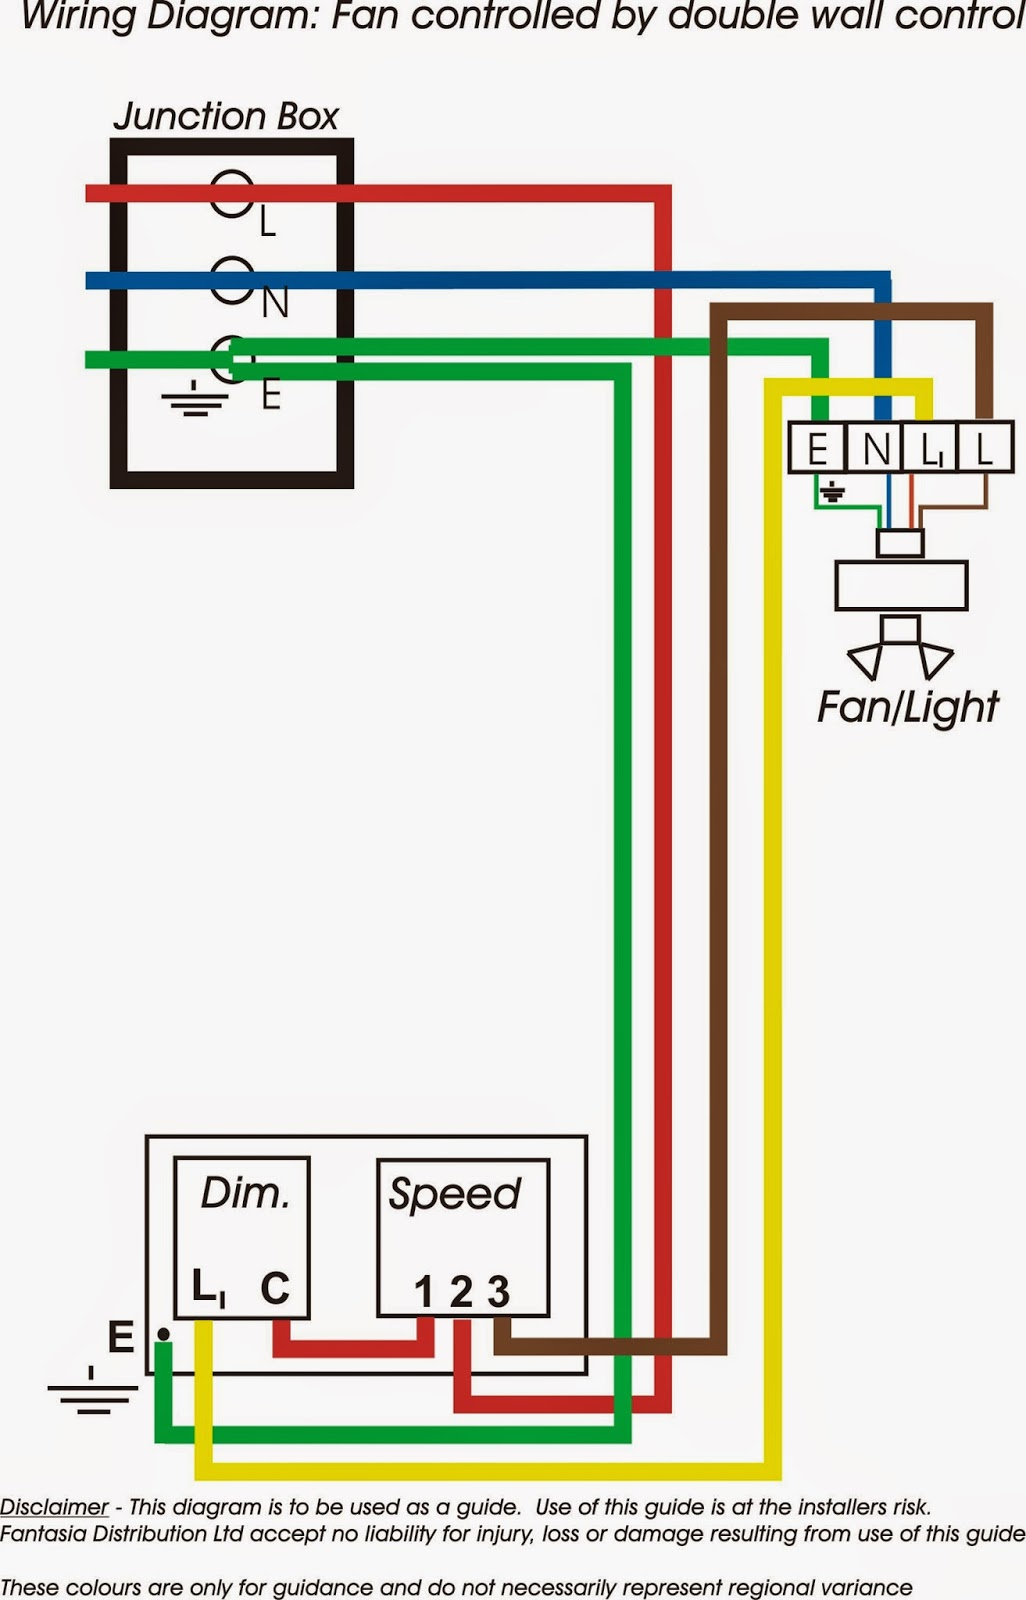 wiring diagram wall control electric work wiring diagram Arctic Cat Wiring Diagrams Online at bayanpartner.co